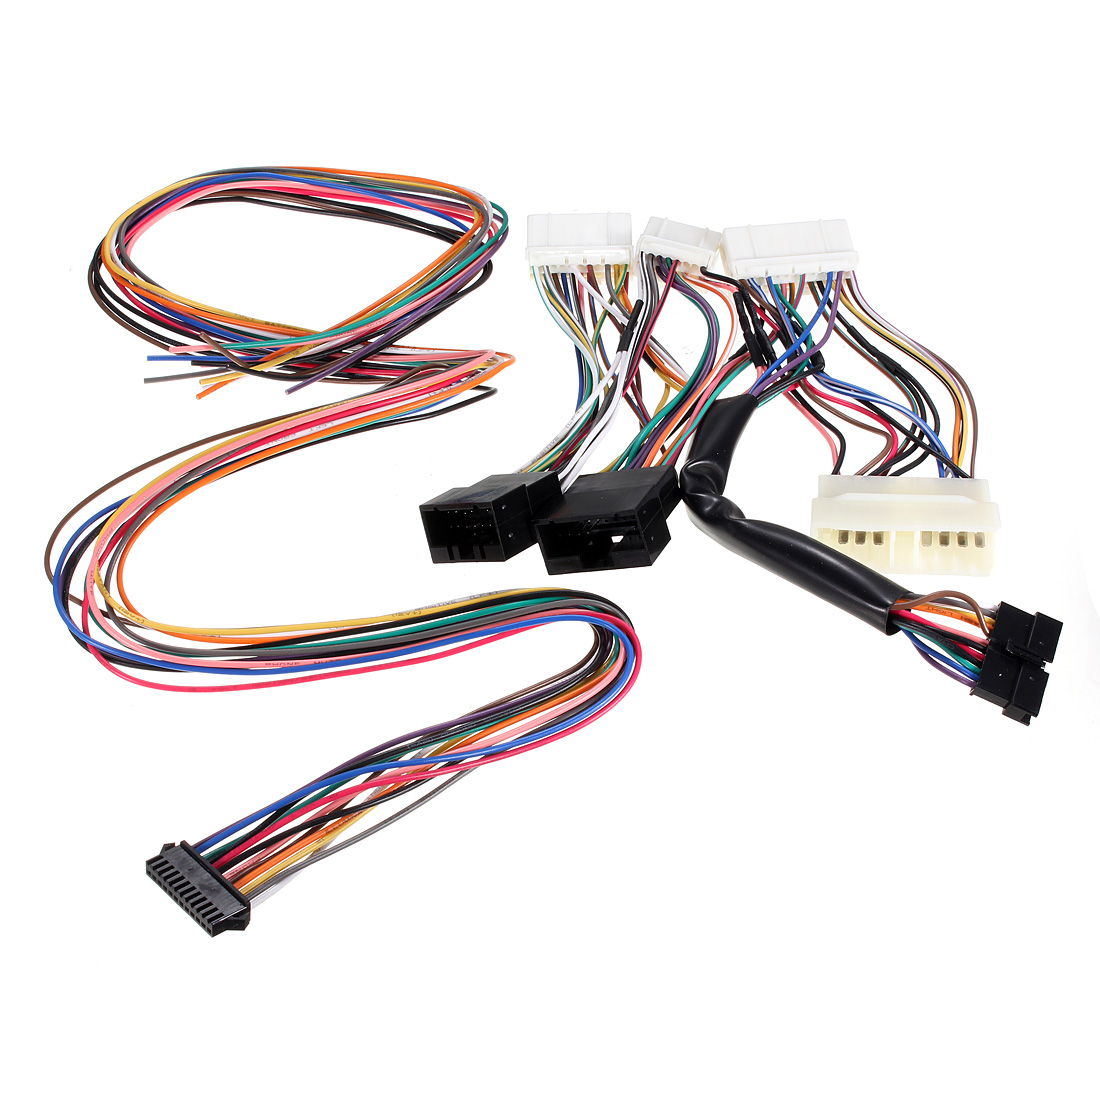 New Obd0 To Obd1 Ecu Conversion Jumper Wiring Harness Fit For Honda Civic 88